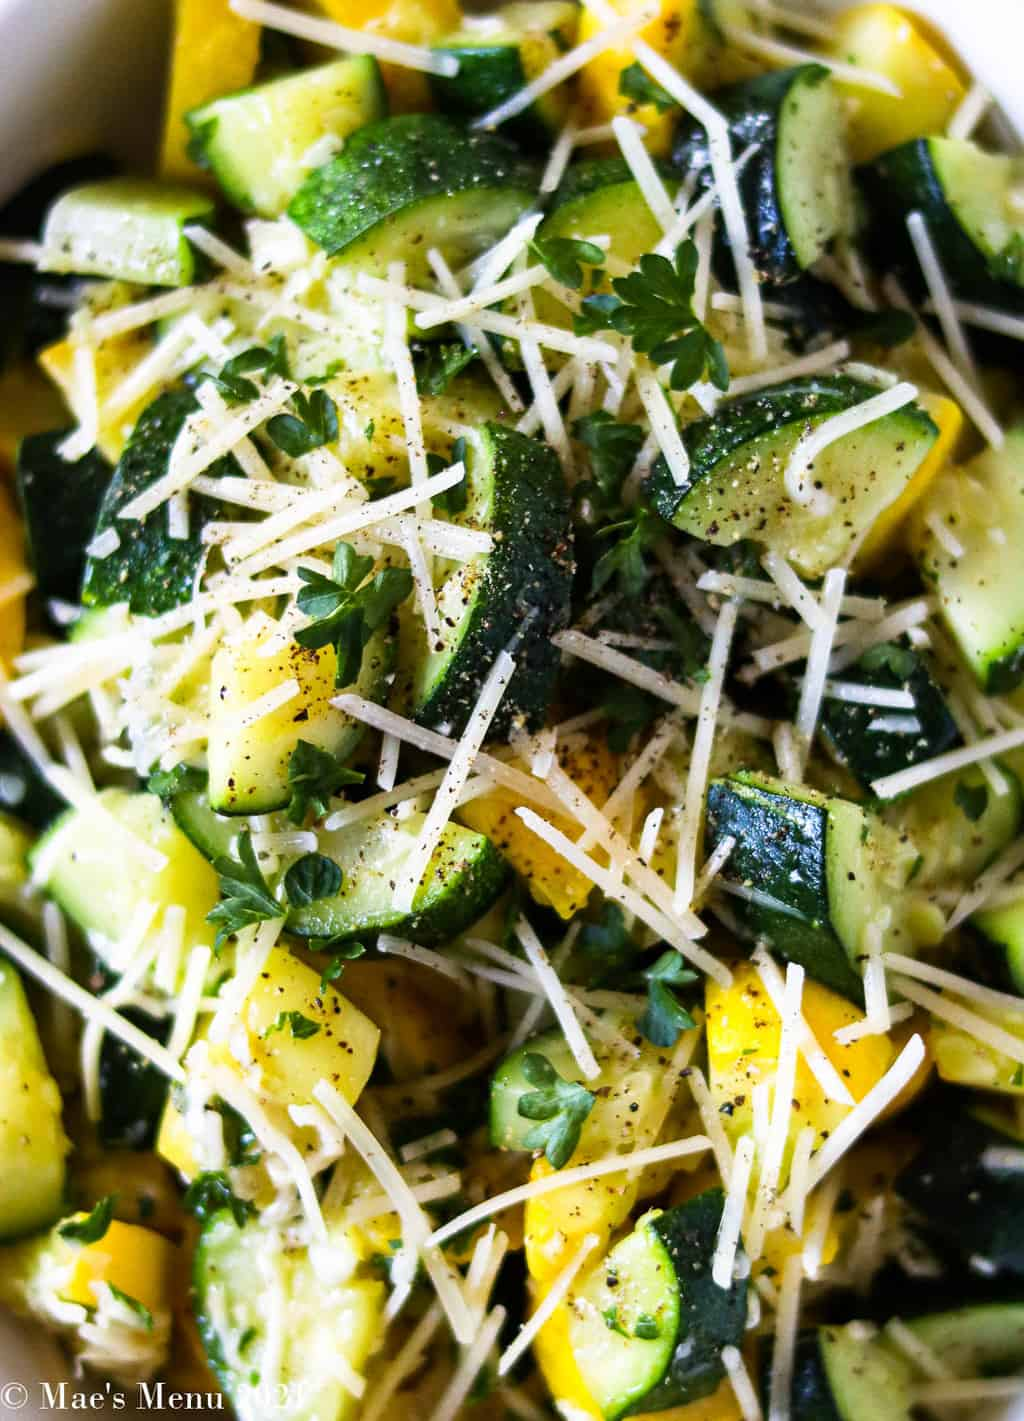 An up-close shot of sauteed zucchini and yellow squash with shredded parmesan cheese and herbs